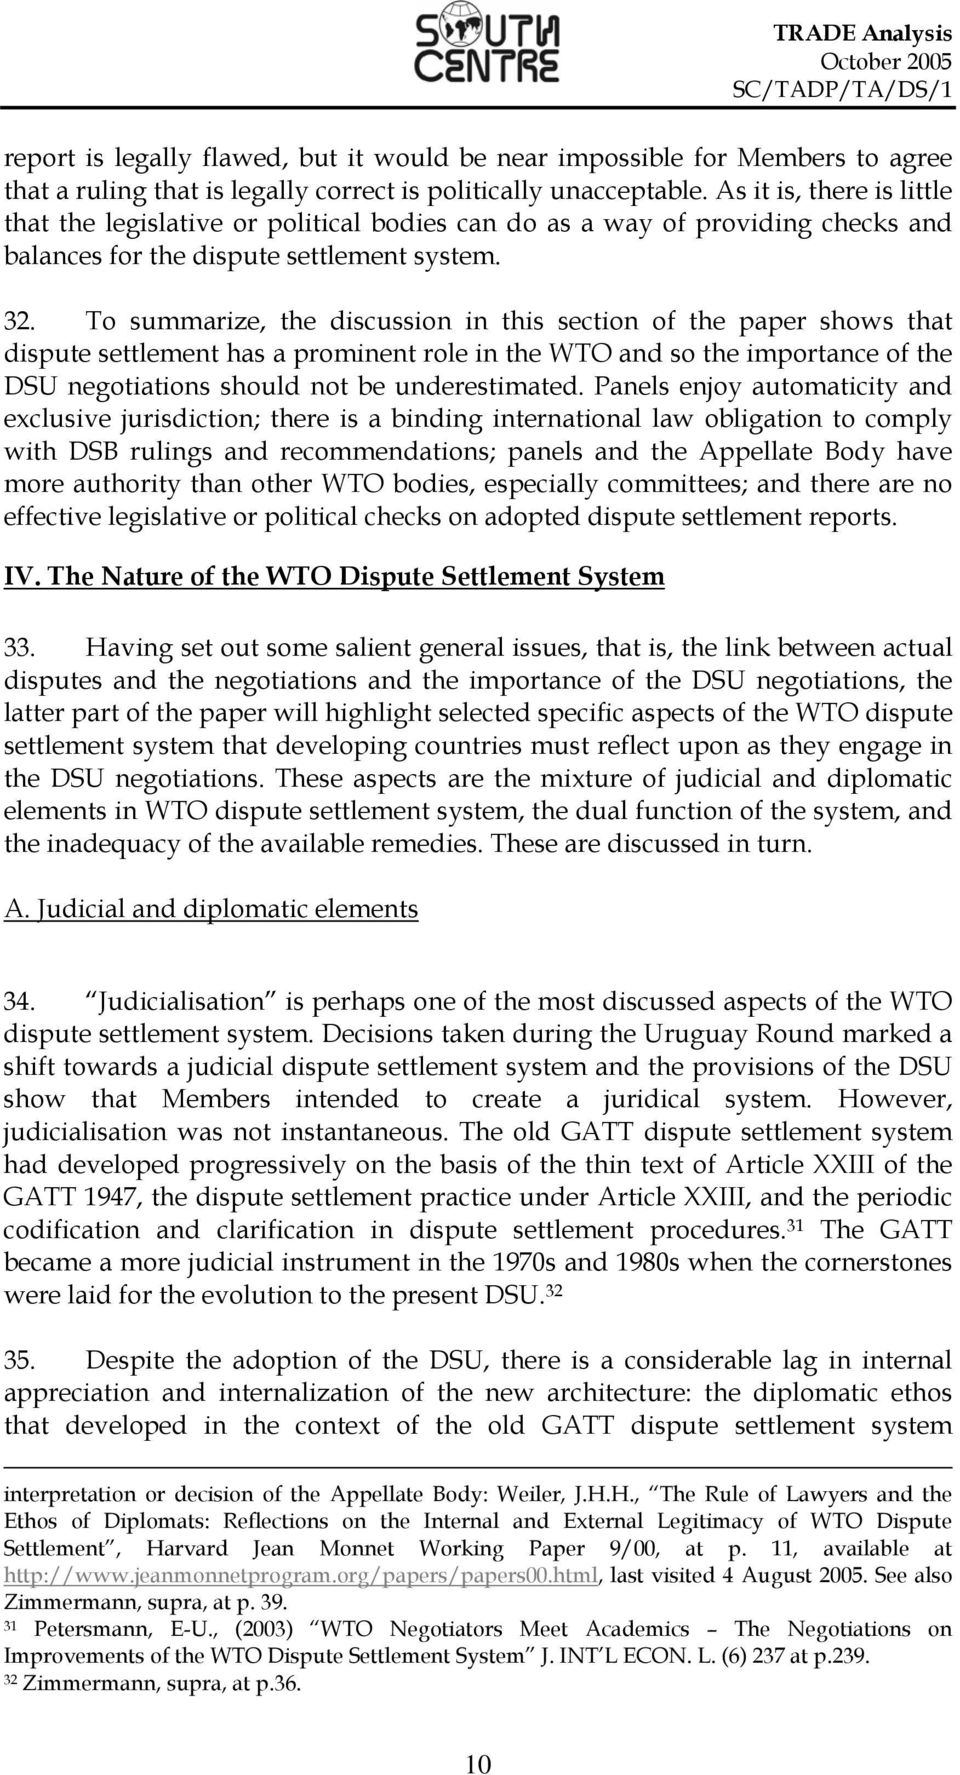 To summarize, the discussion in this section of the paper shows that dispute settlement has a prominent role in the WTO and so the importance of the DSU negotiations should not be underestimated.